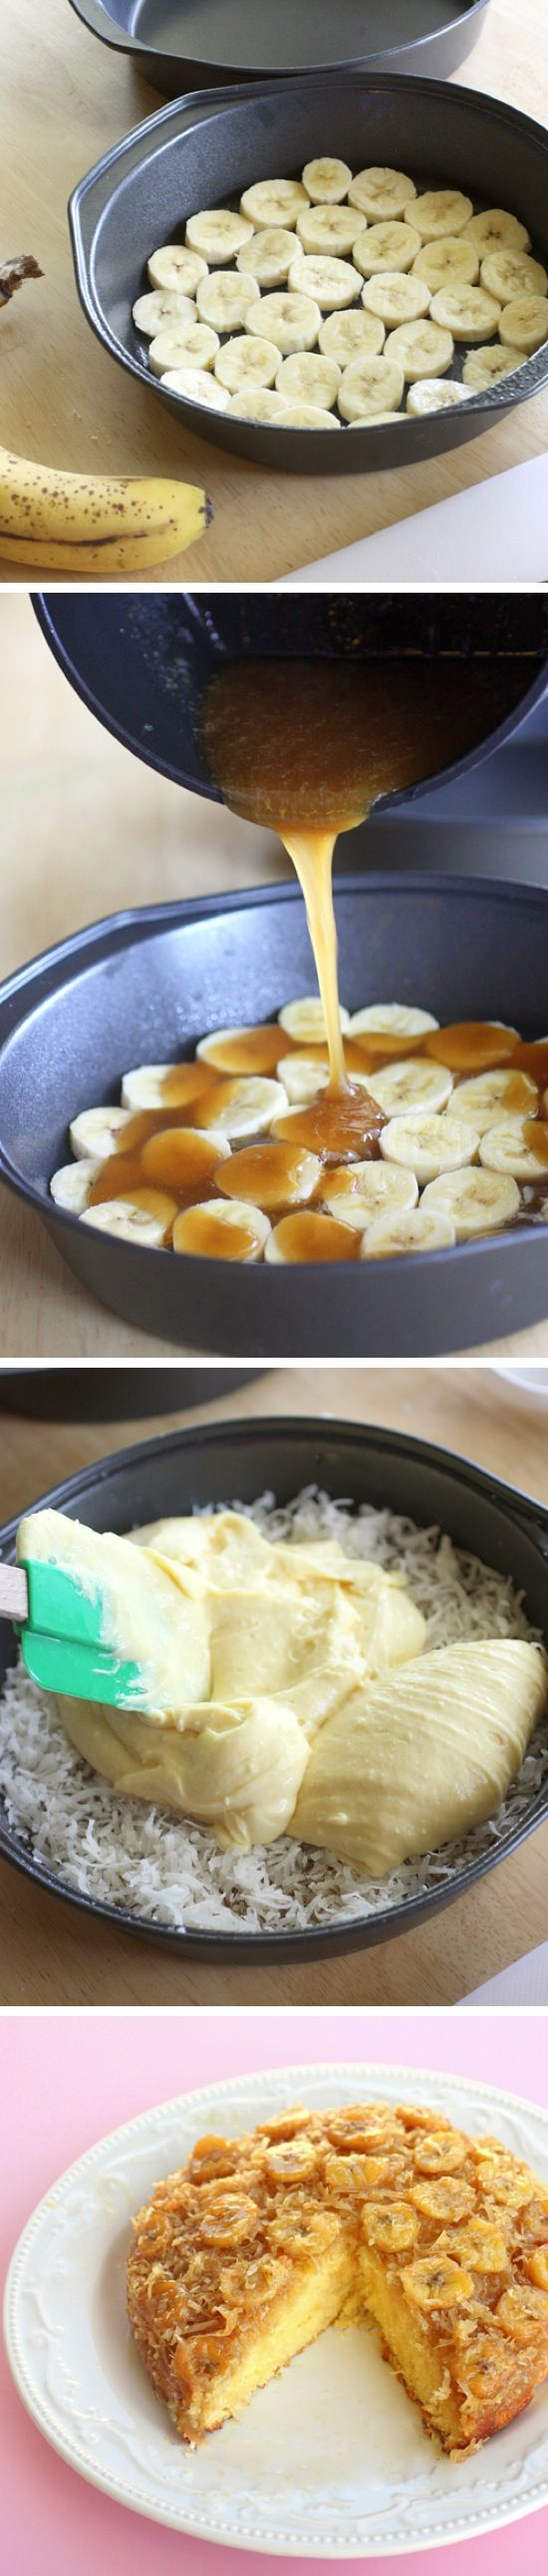 Banana Coconut Upside Down Cake Recipe ~ a layer of bananas and coconut with a brown sugar sauce infusing every bite... YUM!